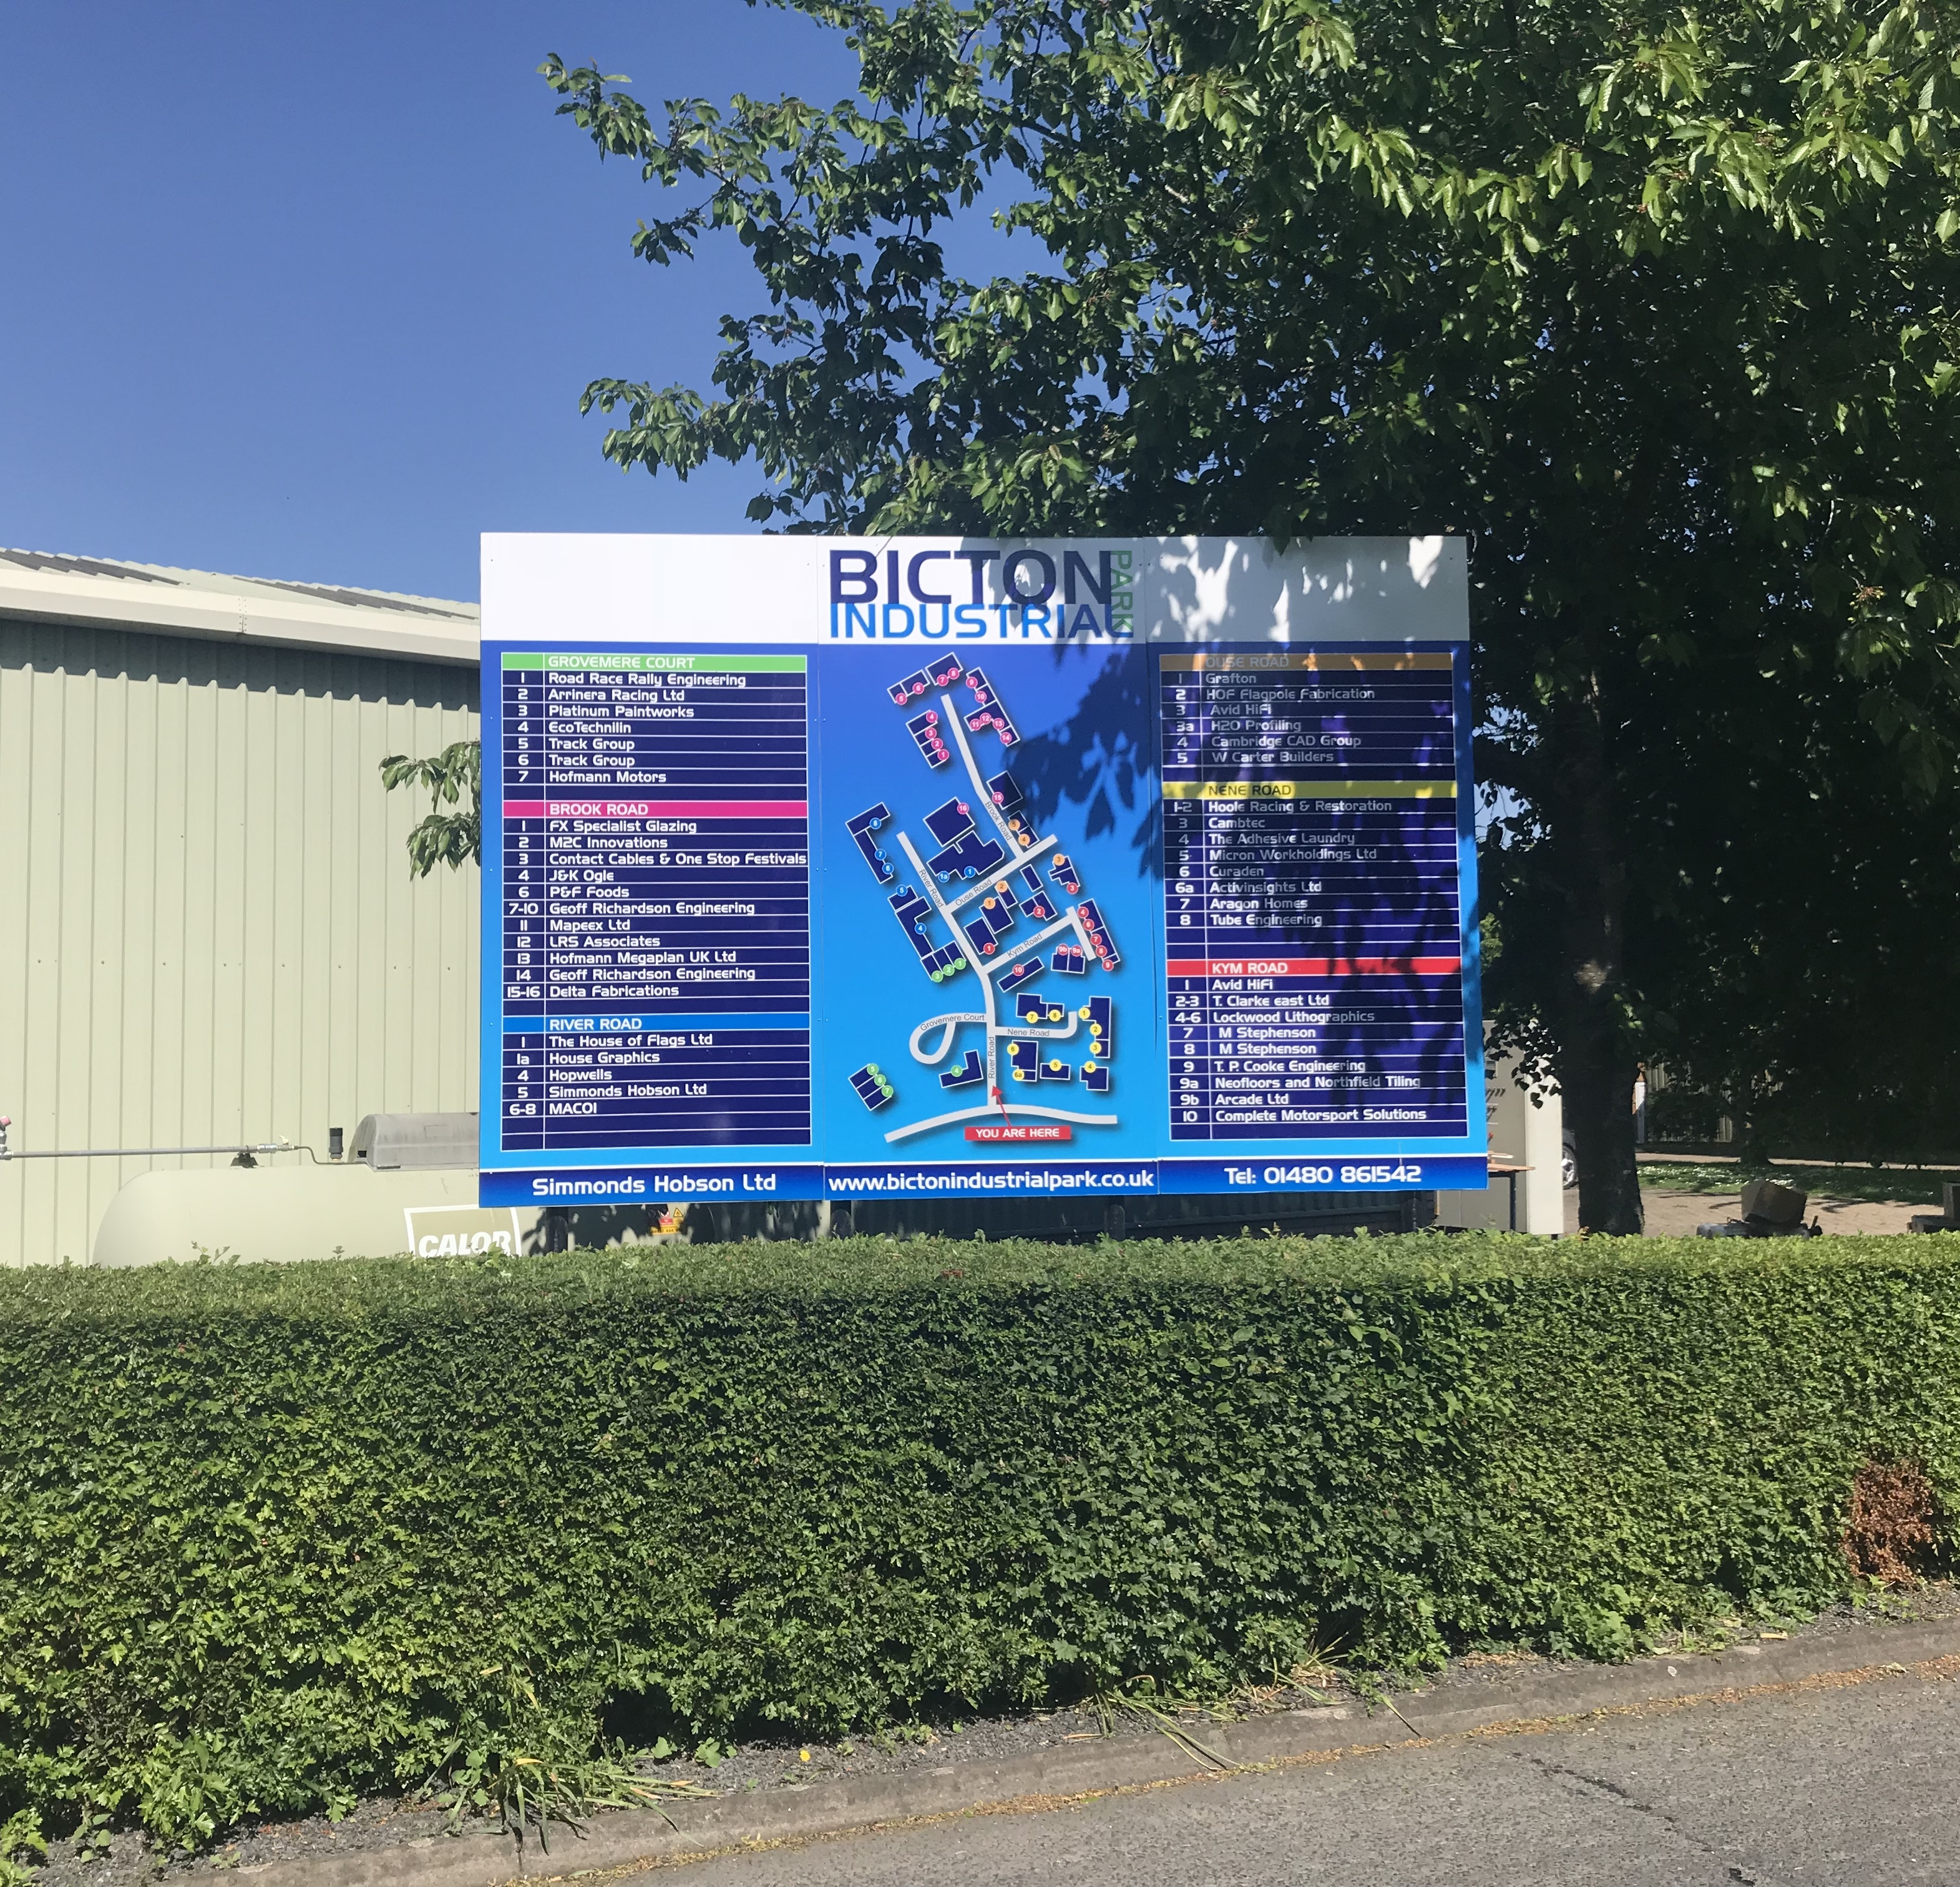 Industrial estate directional sign